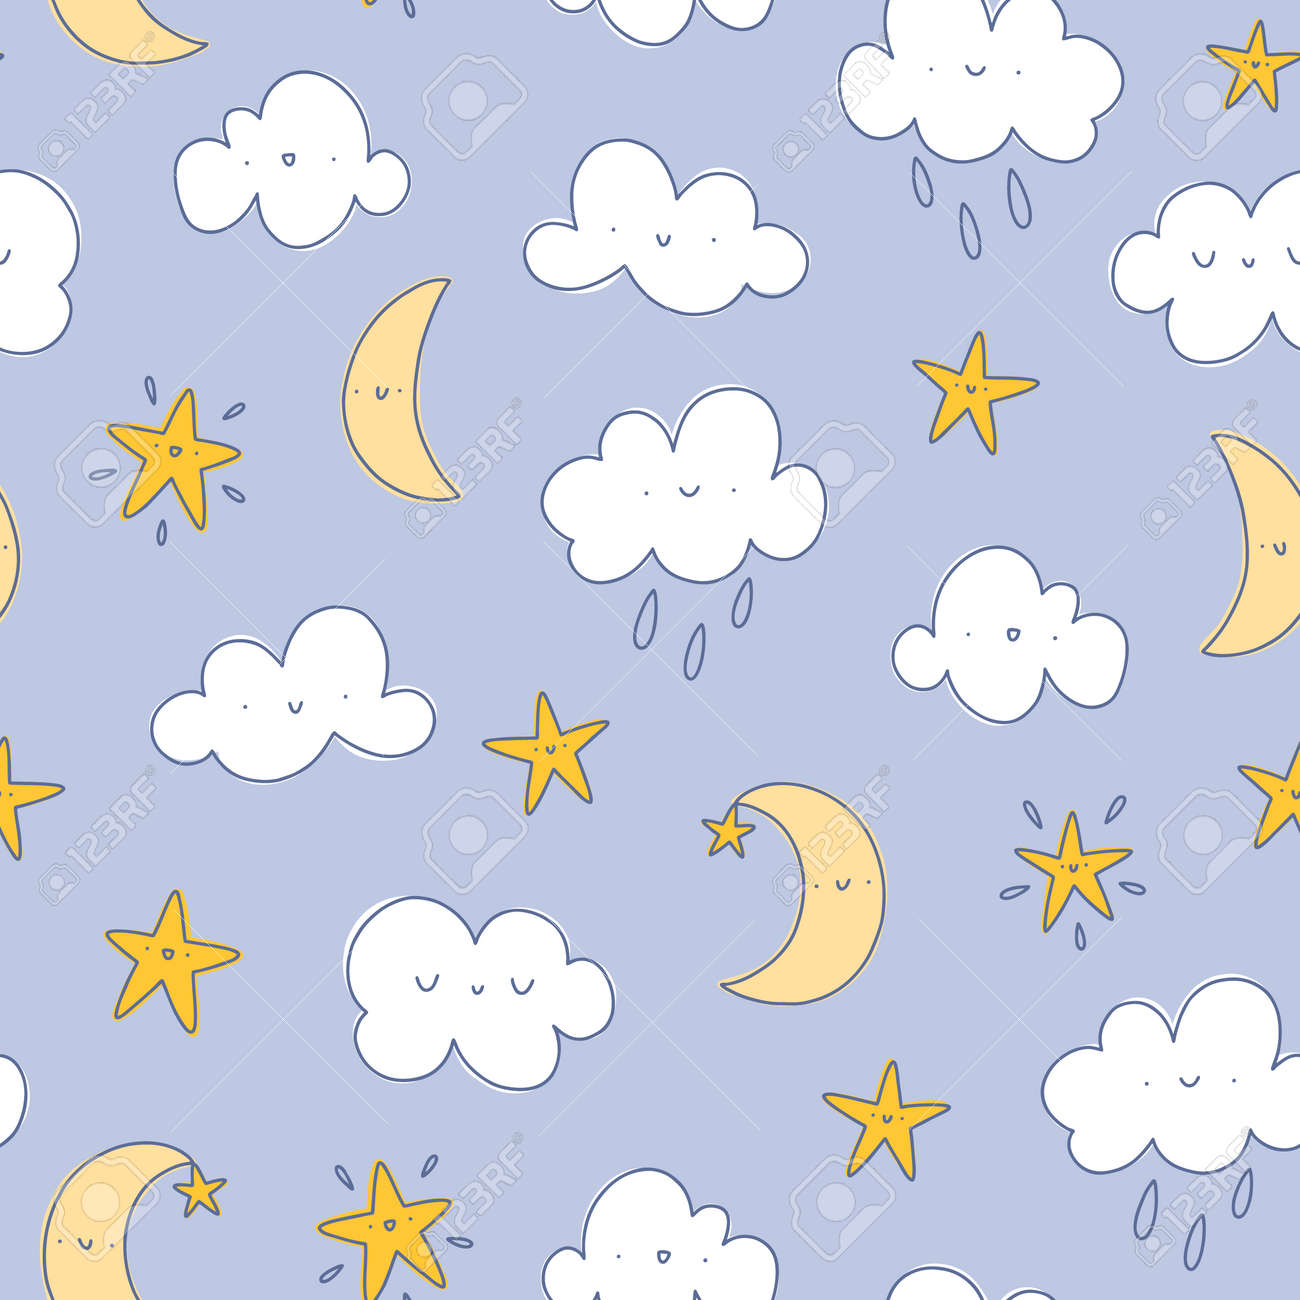 Happy cartoon clouds with raindrops, moon and stars, vector seamless pattern, nursery background - 161289748